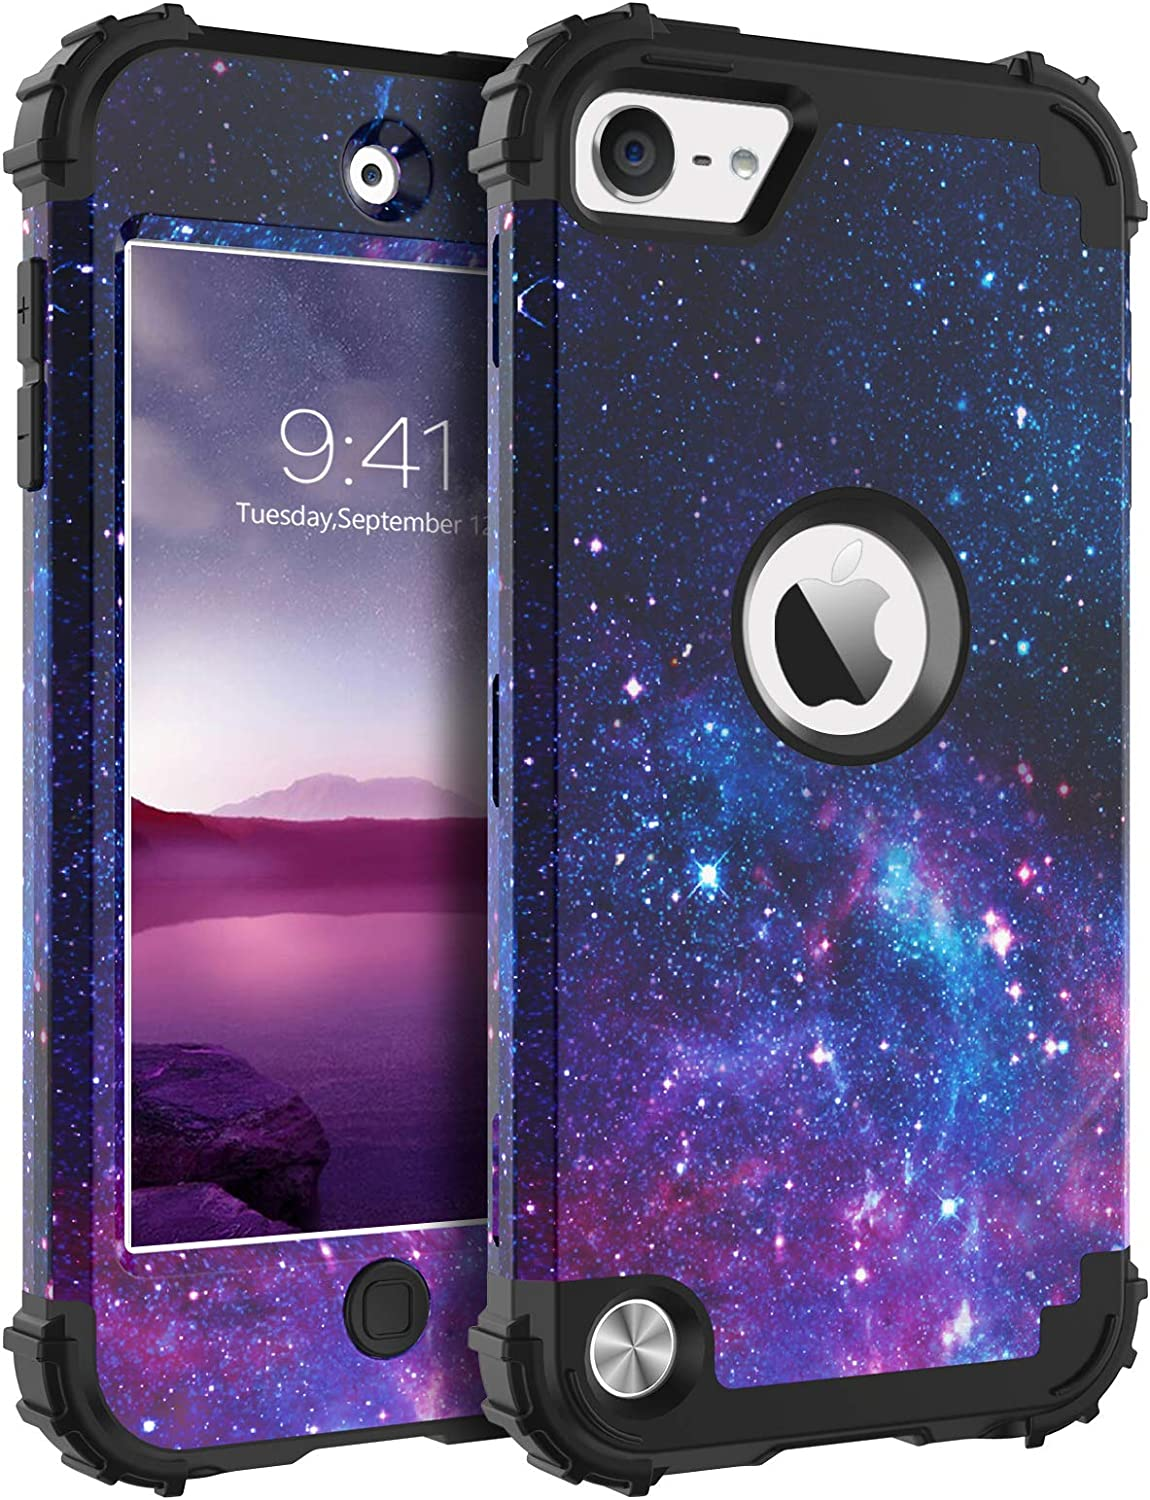 BENTOBEN iPod Touch 7th Generation Case, iPod Touch 6th/5th Case, 3 in 1 Hybrid Hard PC Soft Rubber Heavy Duty Rugged Bumper Shockproof Phone Cover for iPod Touch 7th/6th/5th Generation, Purple